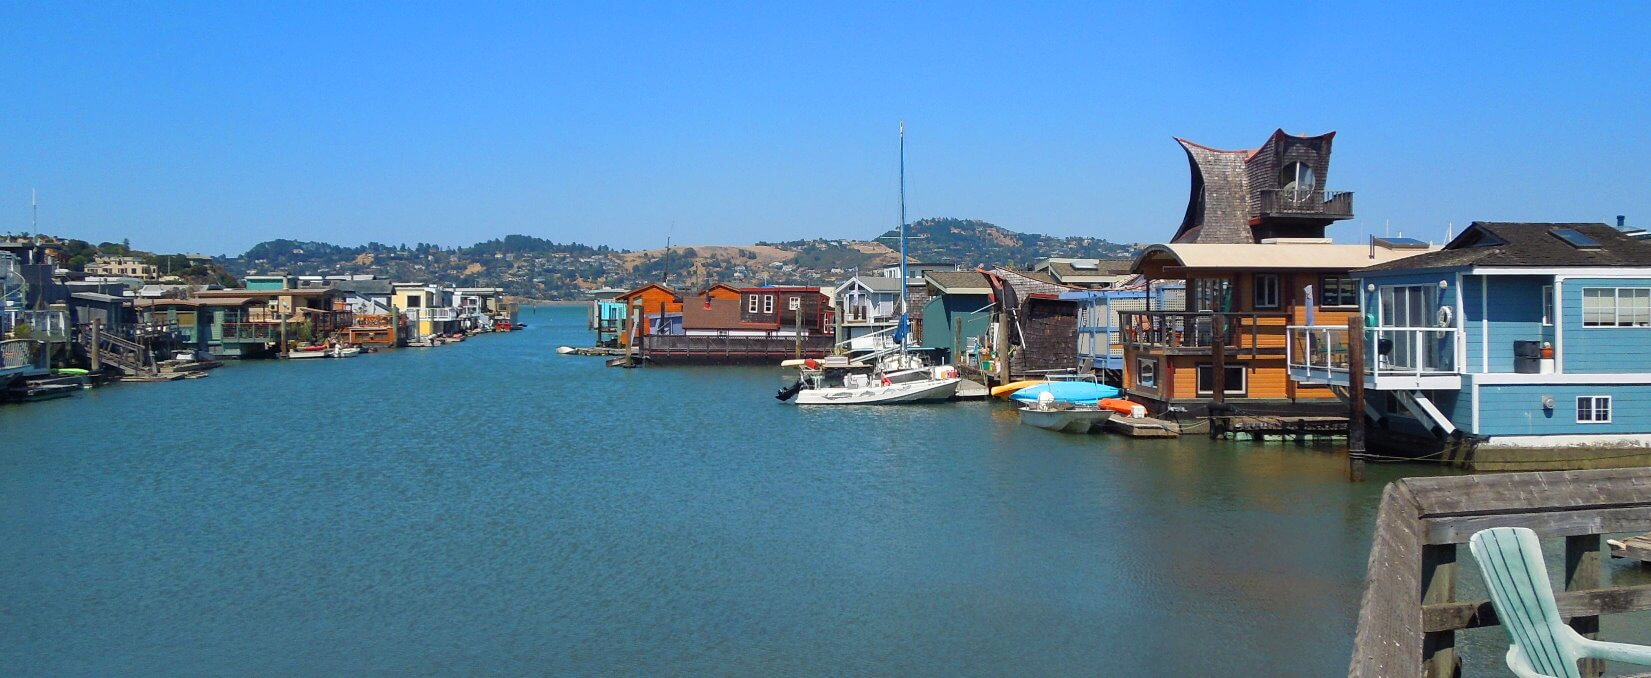 sausalito_house_boats_floating_homes_guided_tour_from_san_francisco_trip_advisor